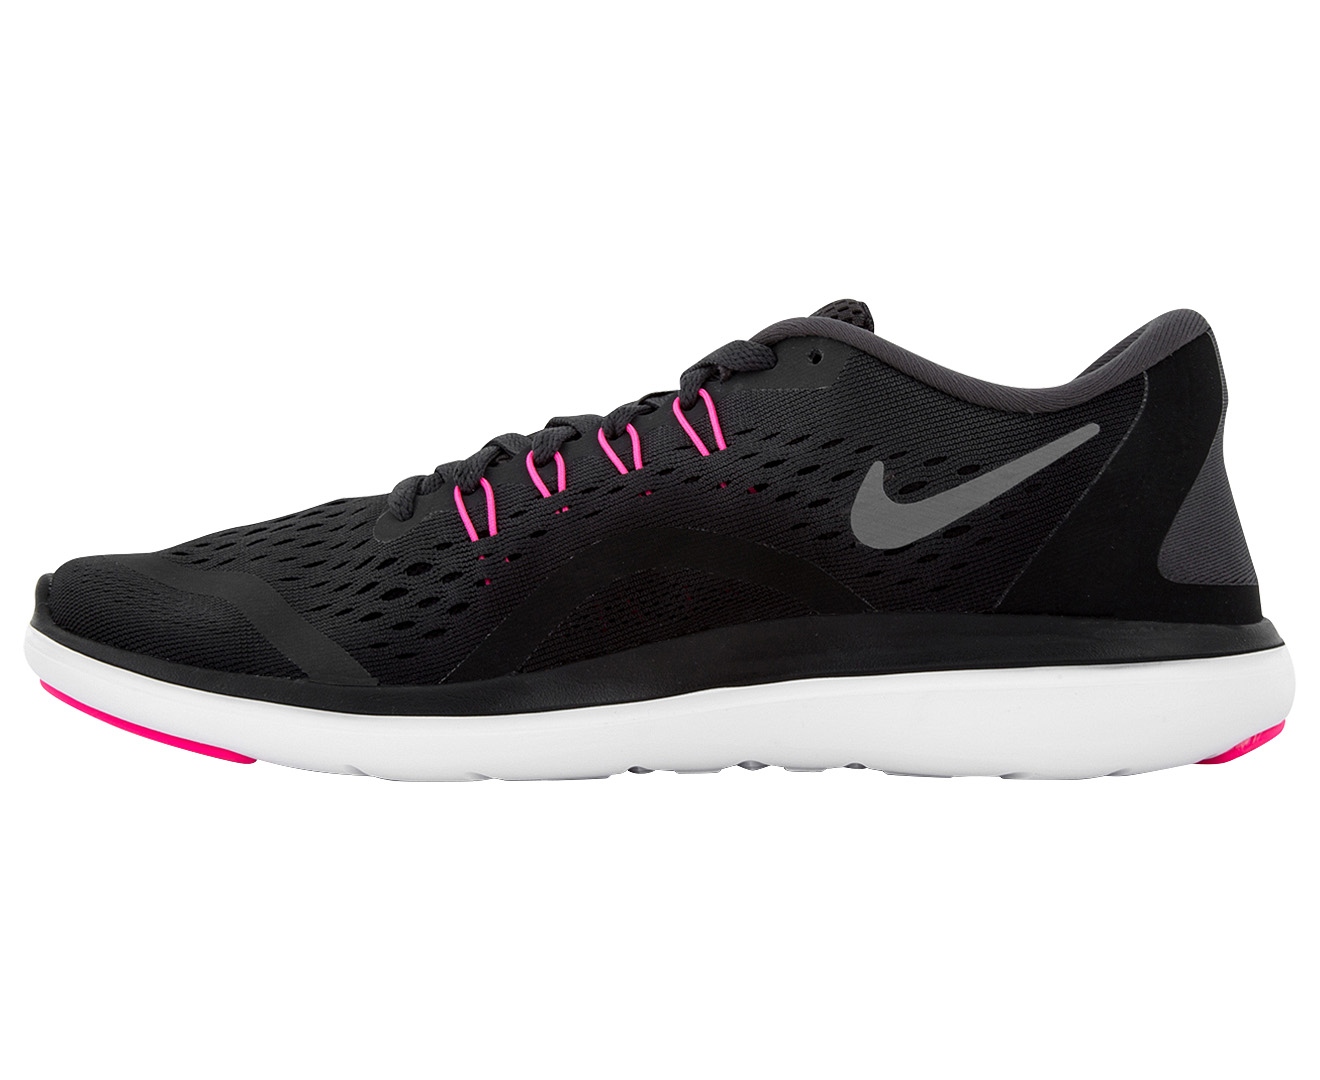 Nike Tri Fit  Womens Shoes